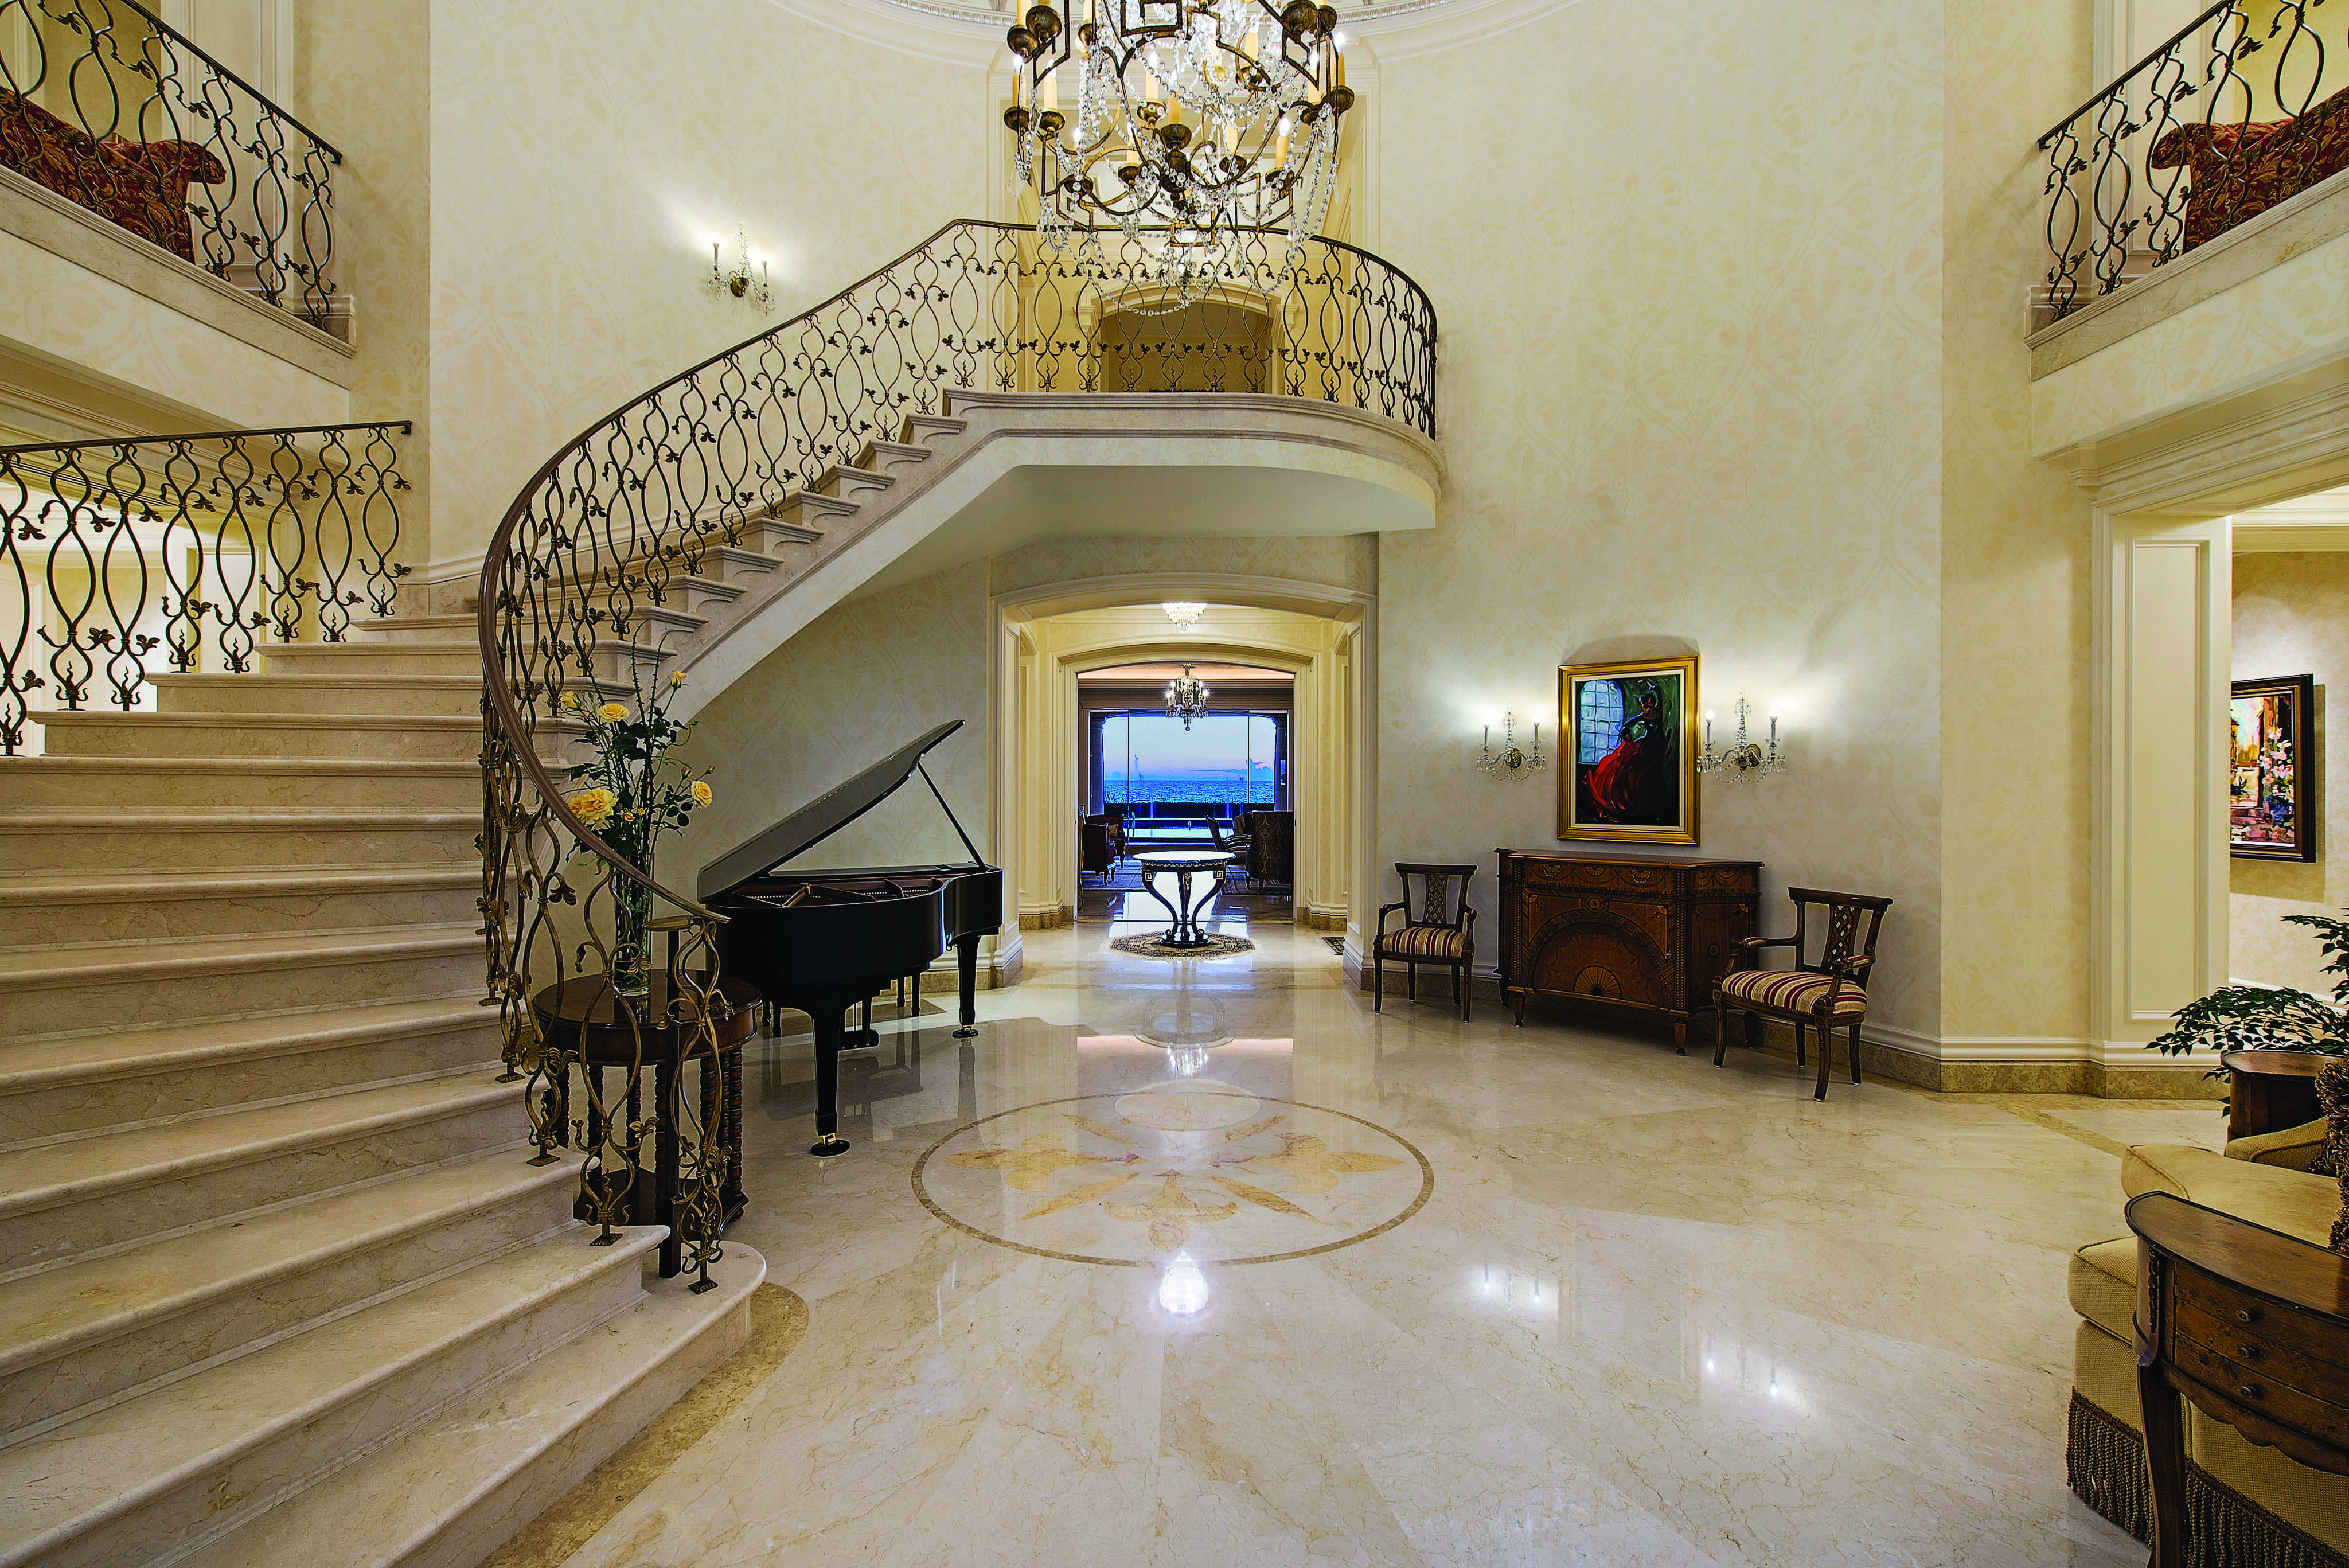 Pristine Marble Floors And An Elegantly Curved Staircase (Image 8 of 13)